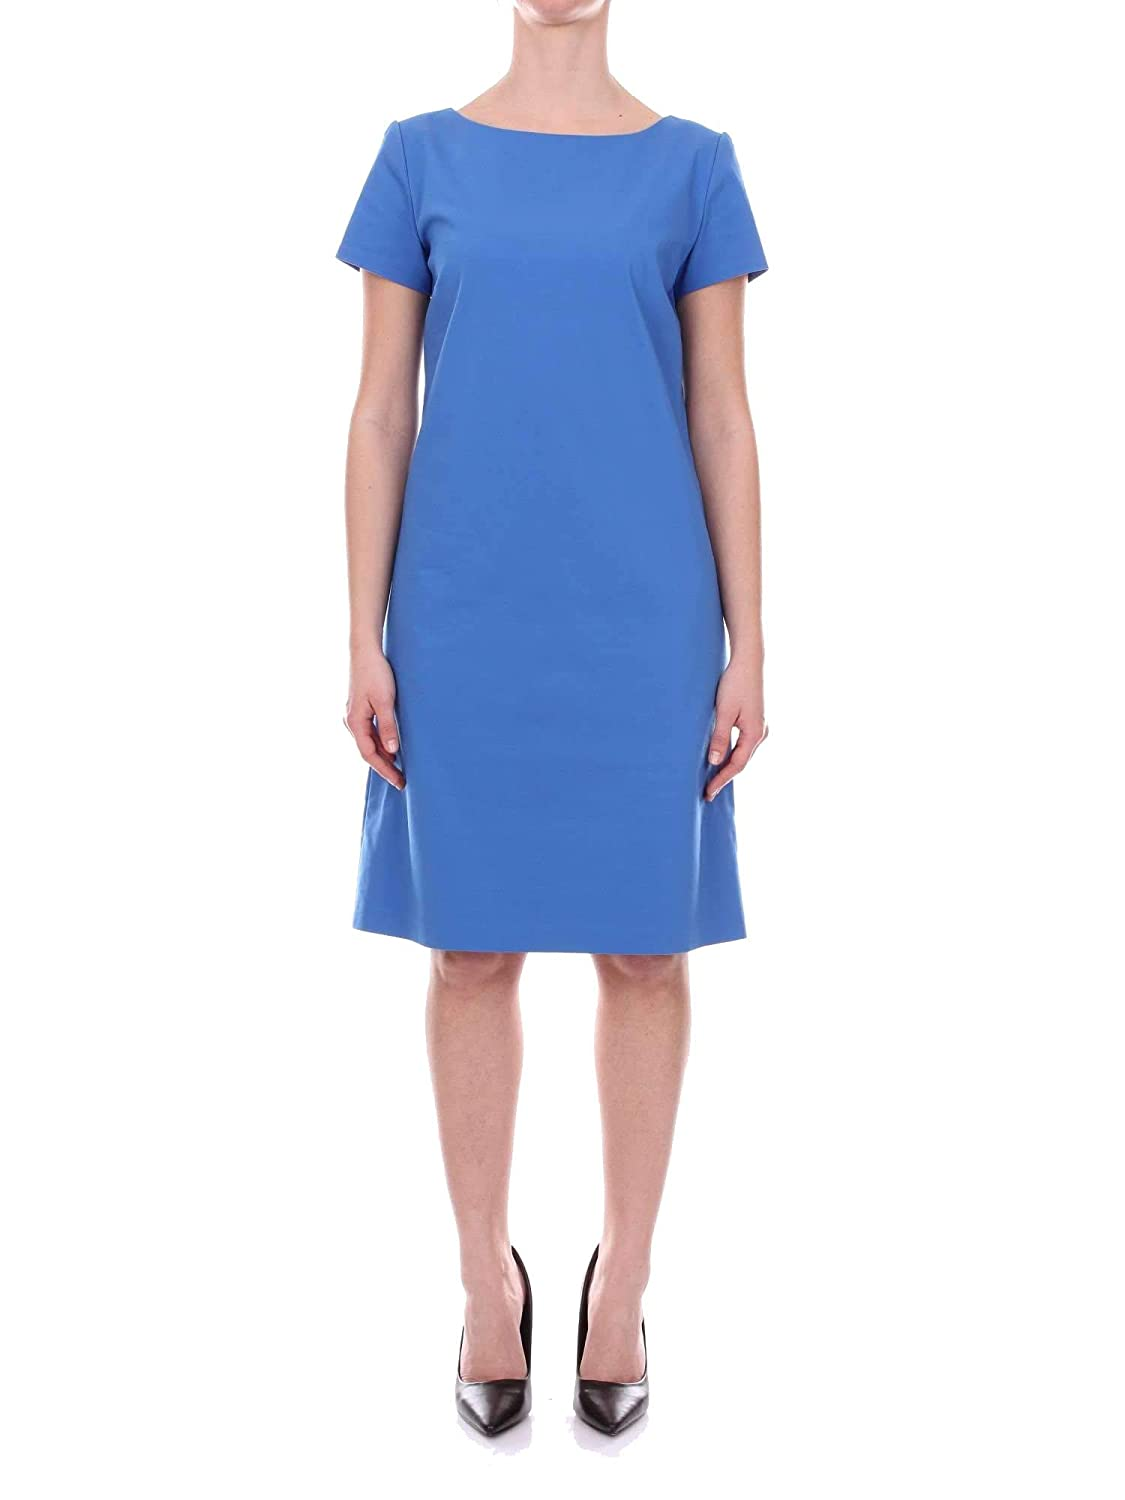 Diana Zini Women's 011956201090blueE bluee Cotton Dress